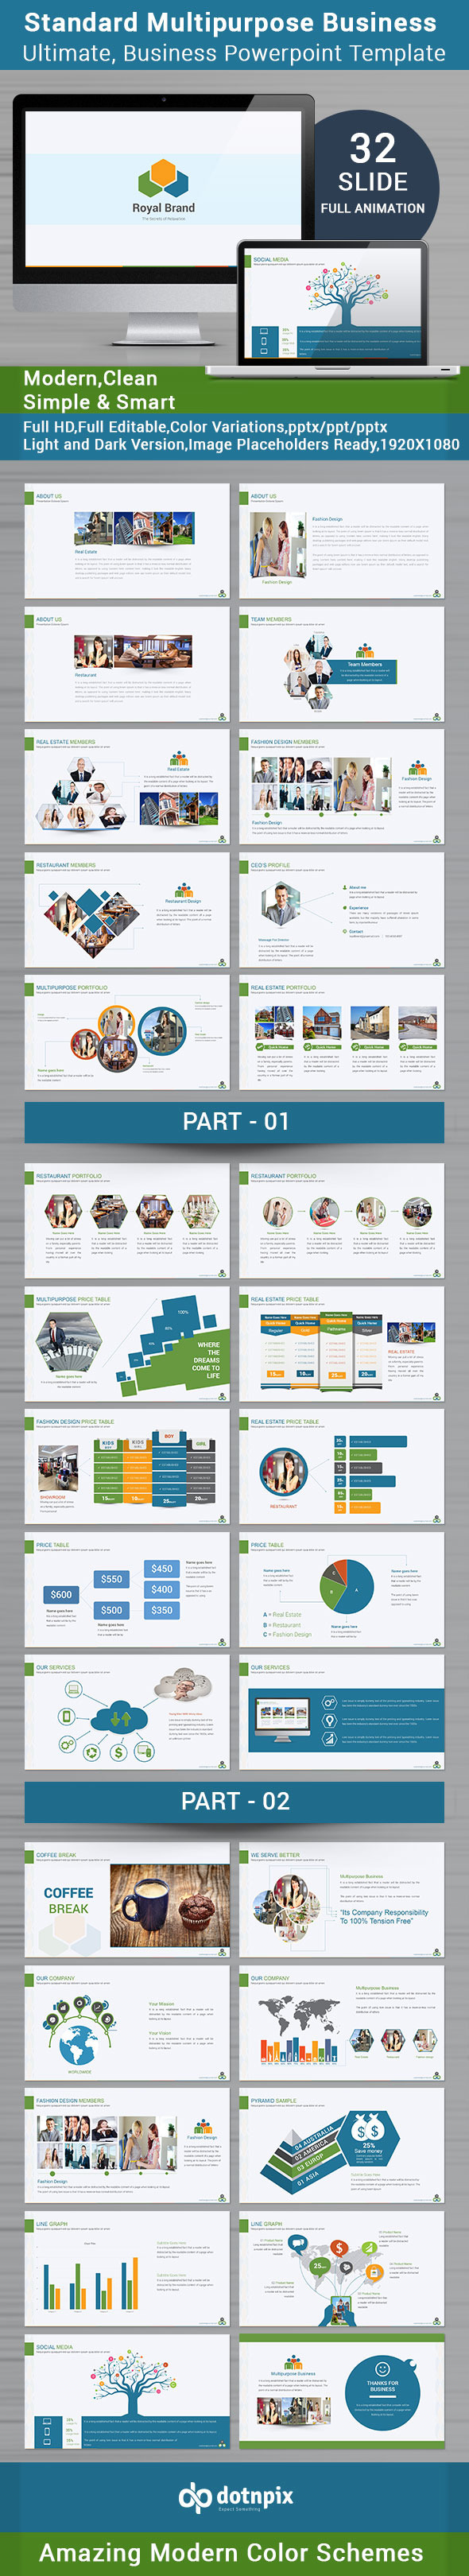 Standard multipurpose business powerpoint template by dotnpix standard multipurpose business powerpoint template powerpoint templates presentation templates toneelgroepblik Gallery